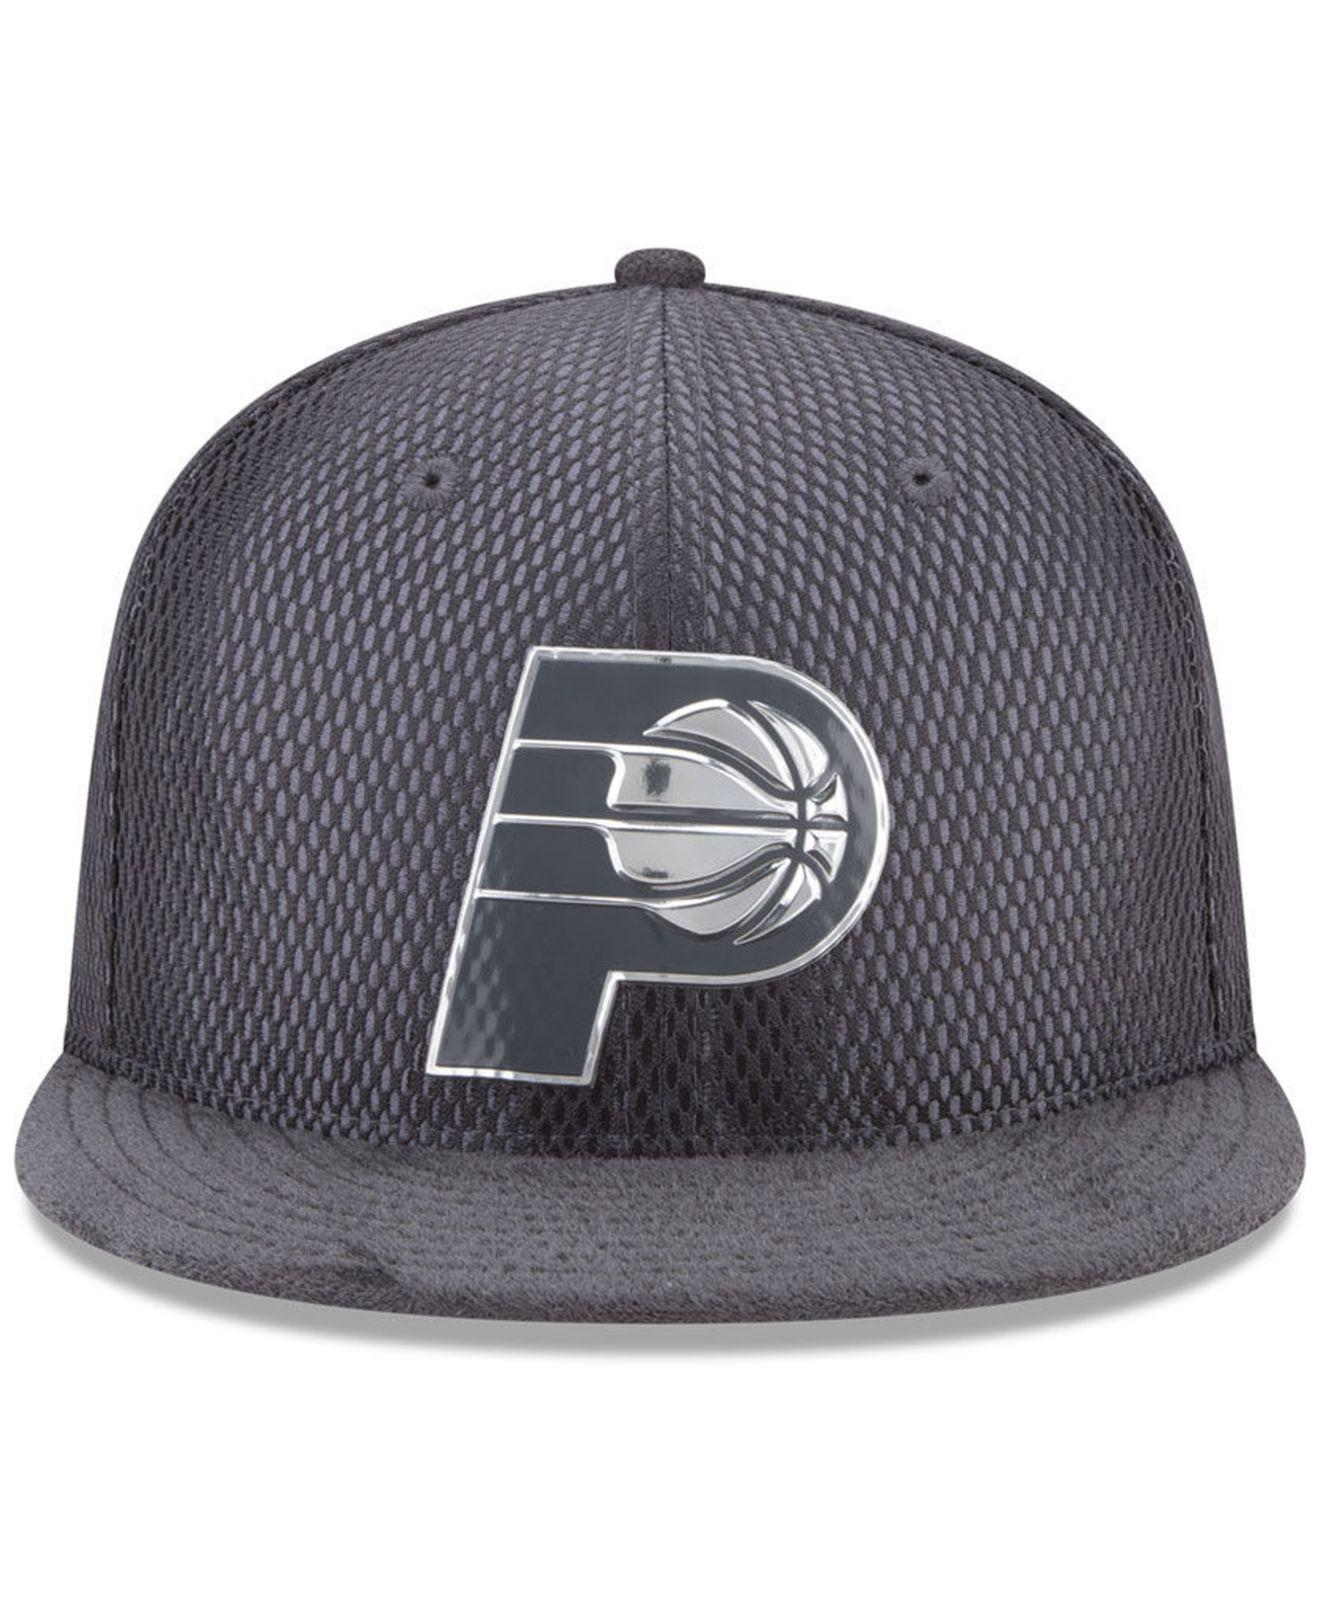 best service 4a94f 1330f Lyst - KTZ On-court Graphite Collection 9fifty Snapback Cap for Men